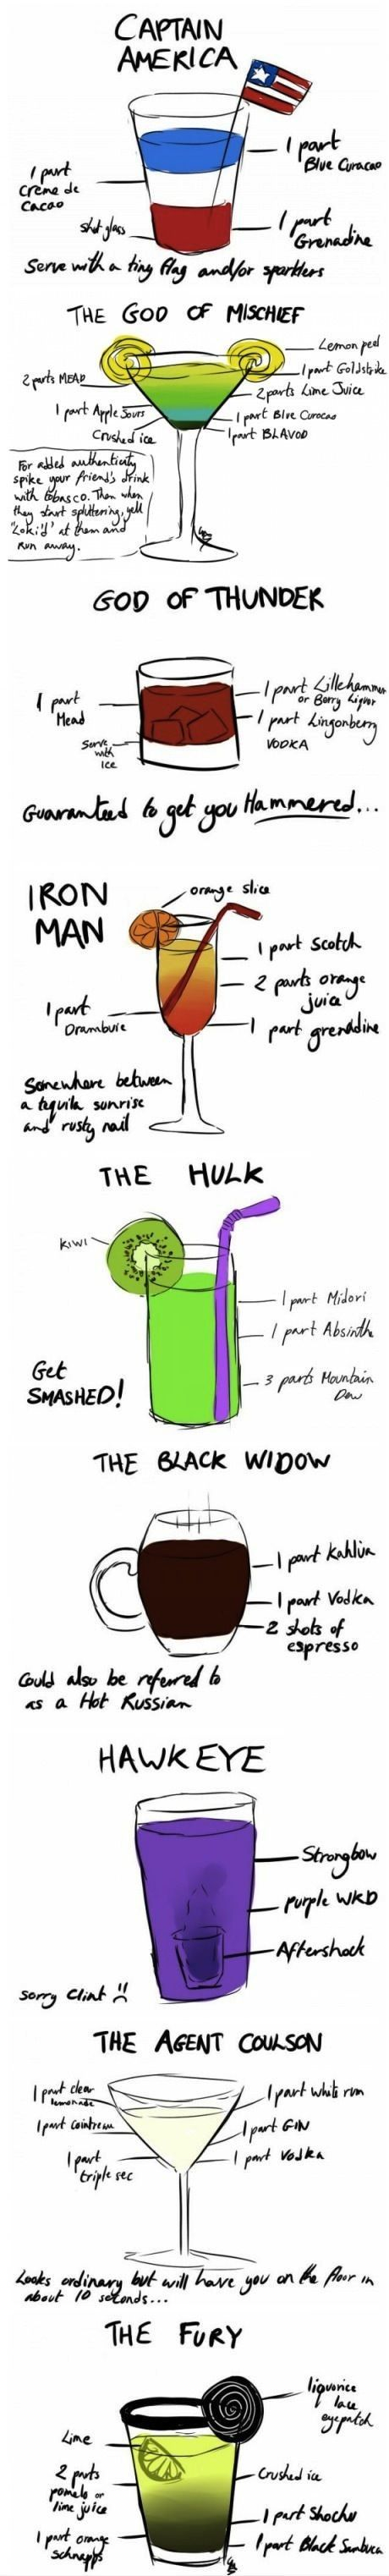 The Avengers mixed drinks. Someday, Ill have an adult Avengers themed party. And itll be awesome.Avengers Parties, Food, Avengers Cocktails, Avengers Drinks, Super Heroes, Drinks Recipe, Mixed Drinks, Superhero, The Avengers